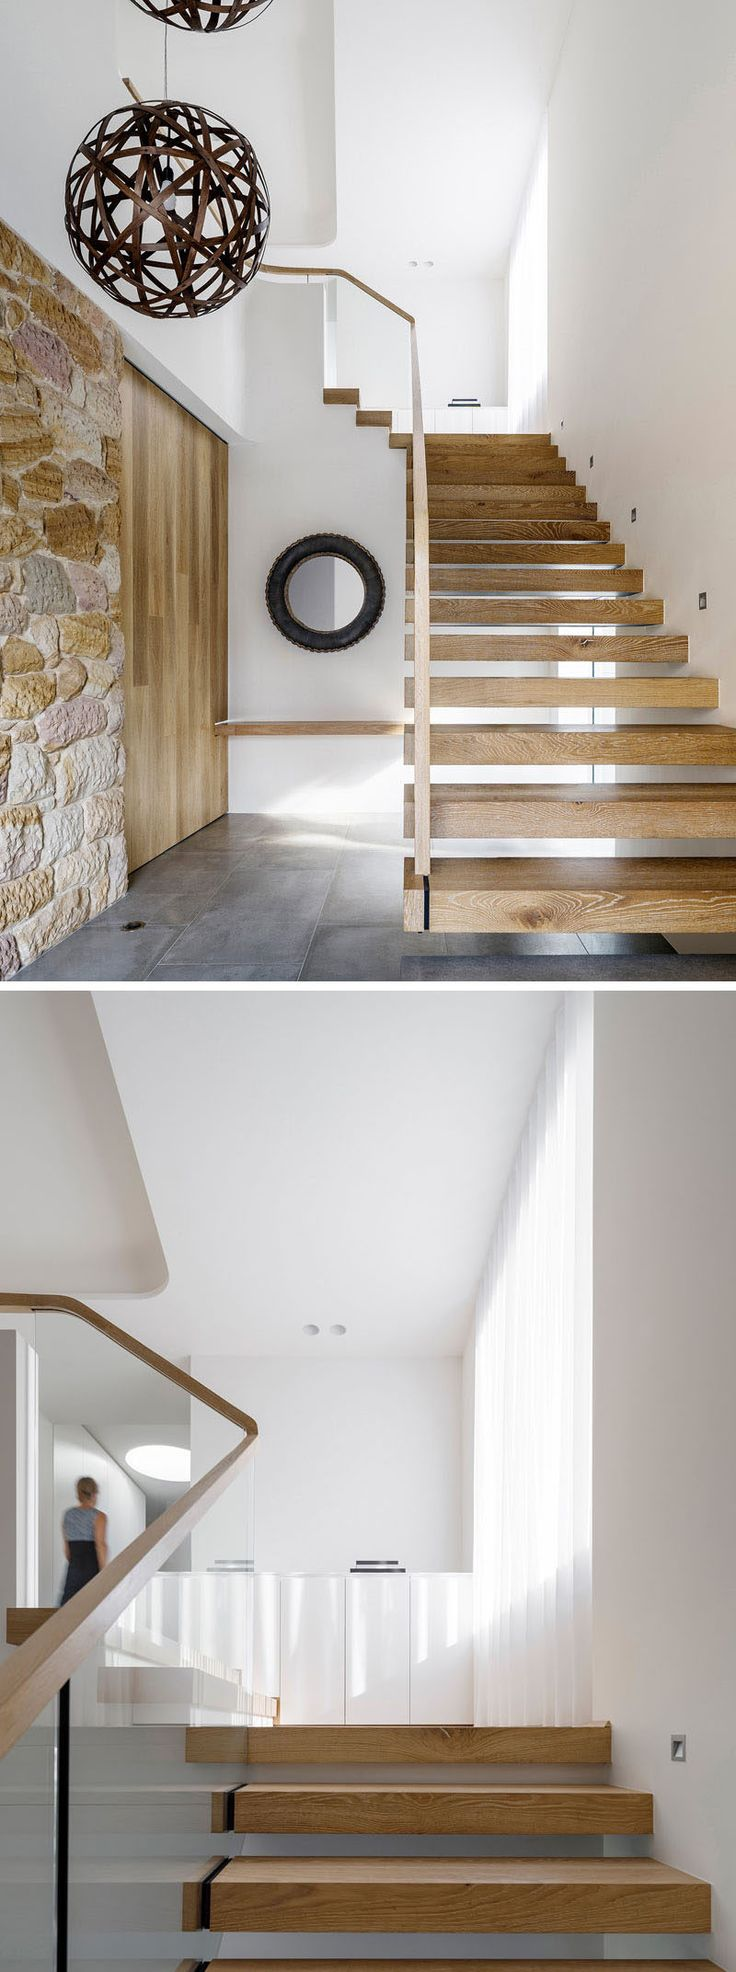 To the left of these modern wood and glass stairs is a recycled sandstone wall and large sliding wood door.